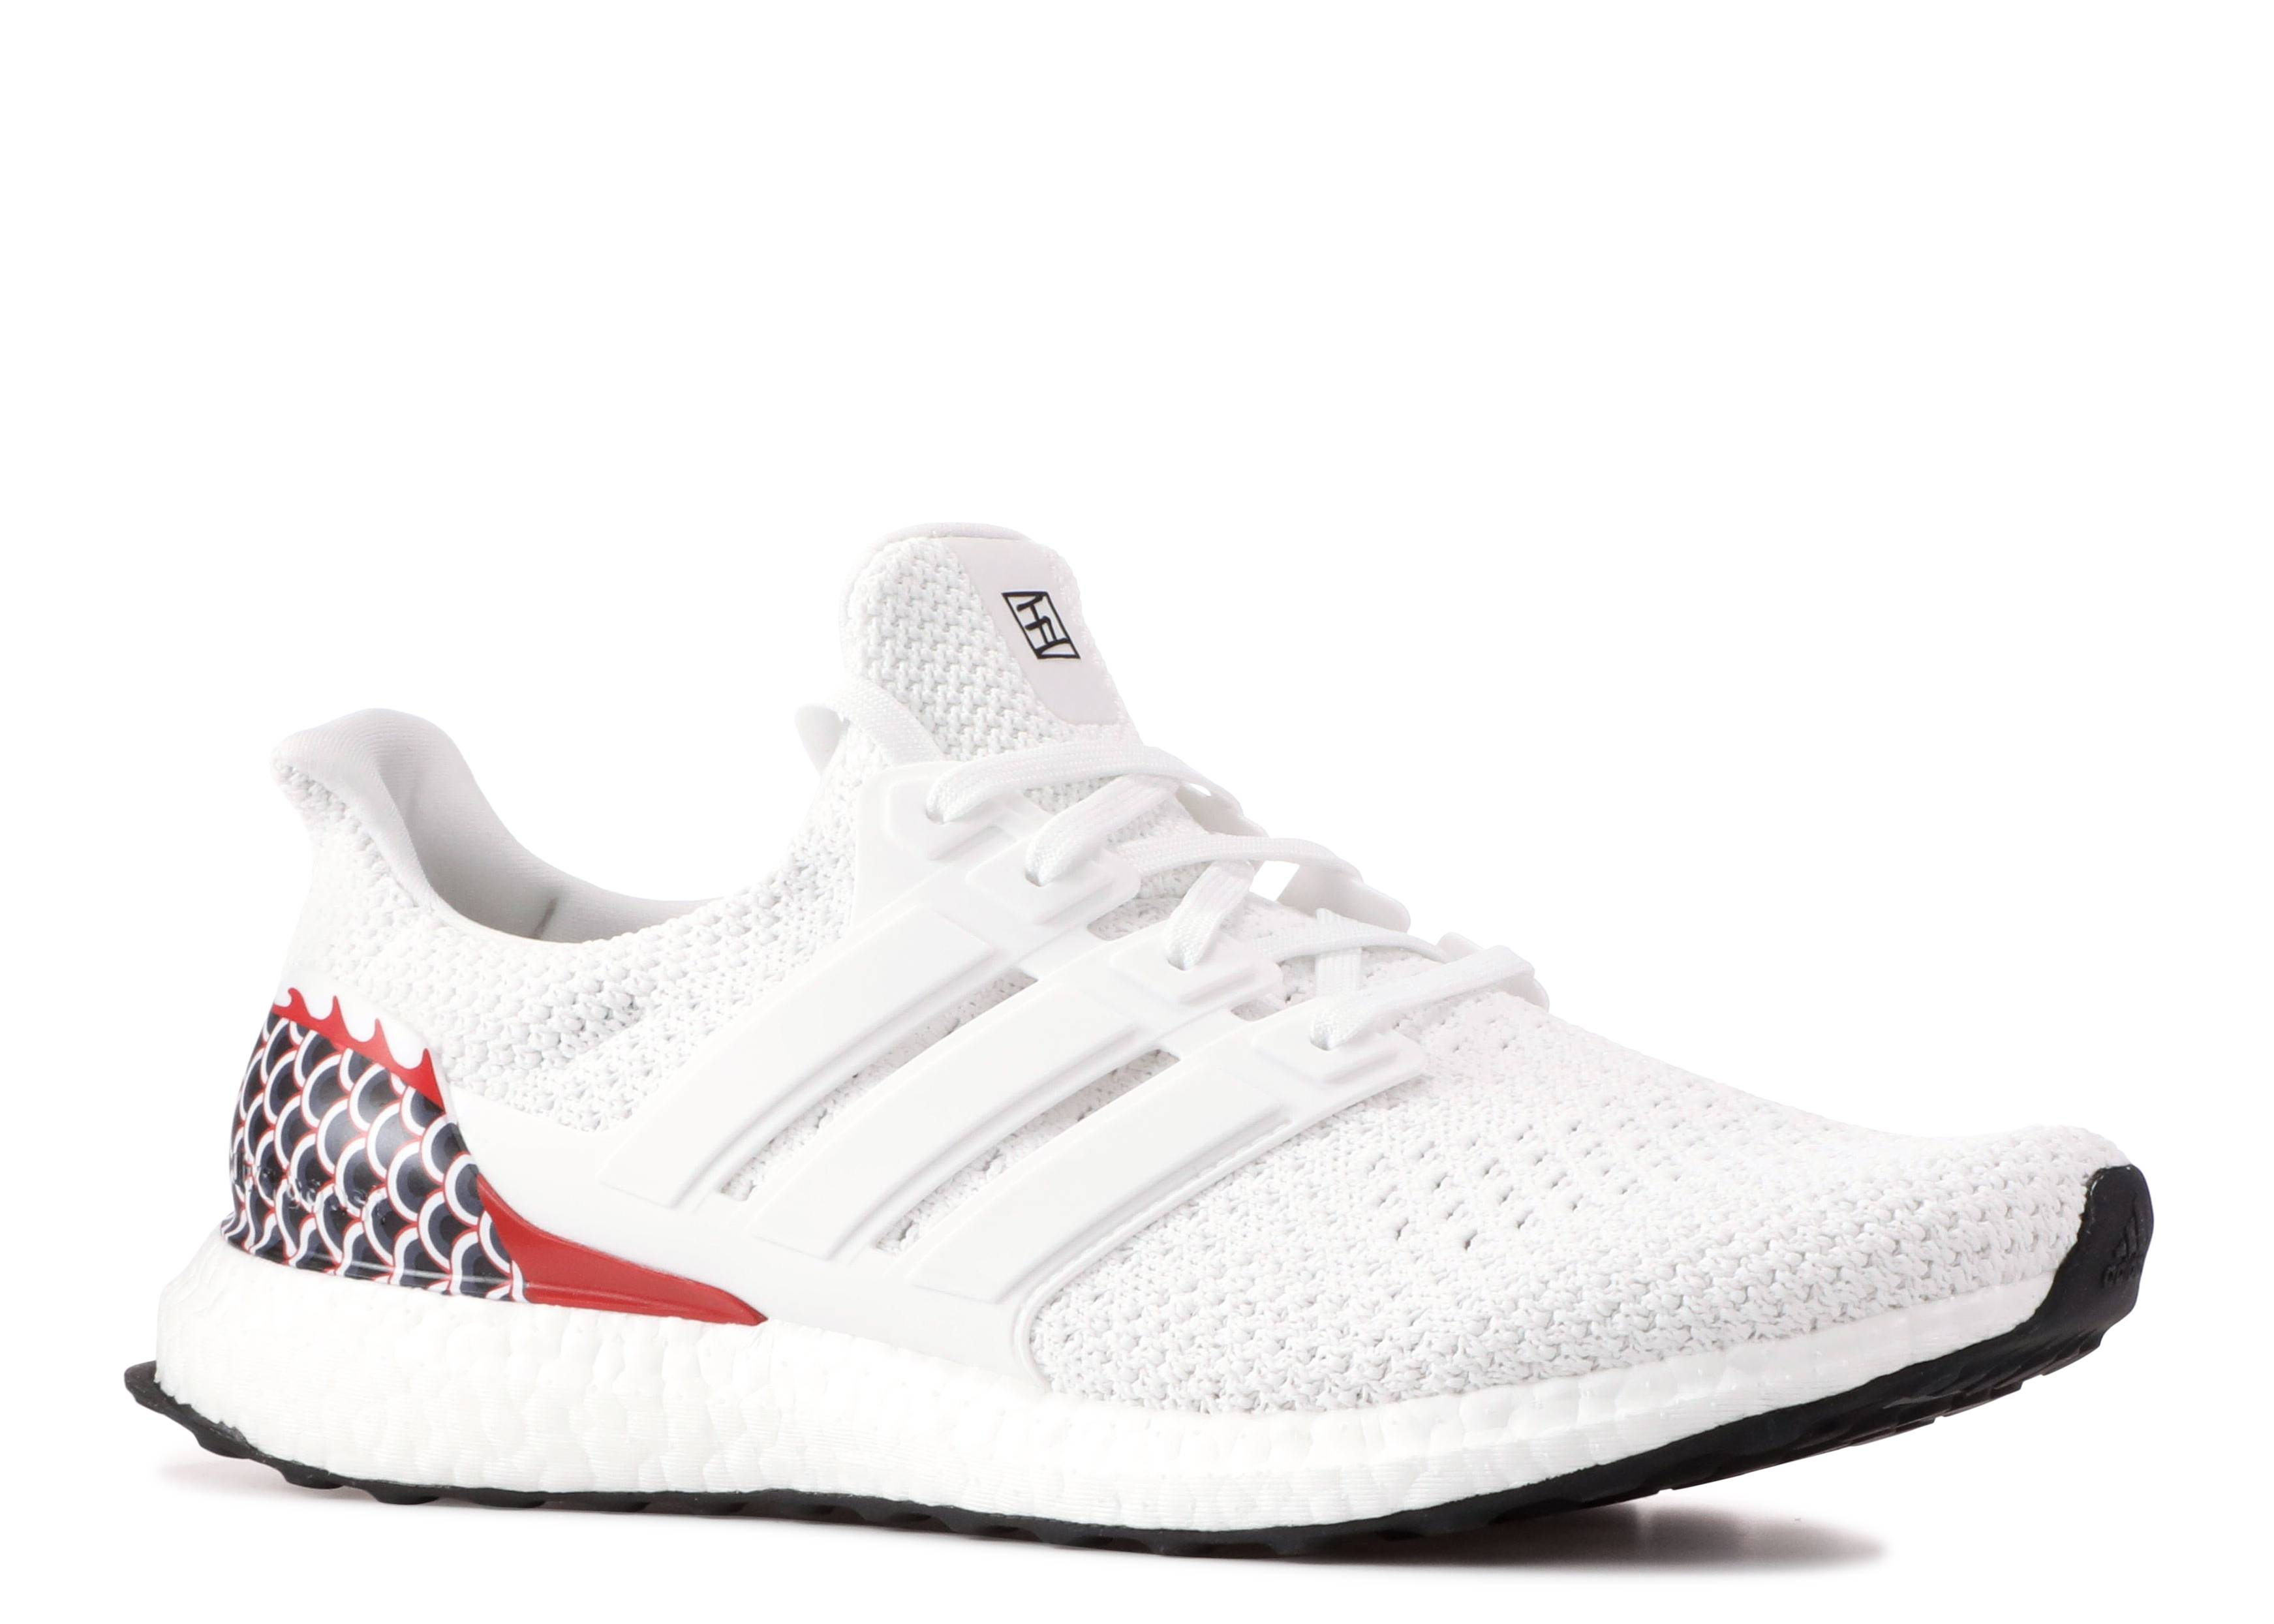 82f3f7c5aaccb Ultra Boost Clima Dragon Boat - Adidas - ee7150 - white red multi ...